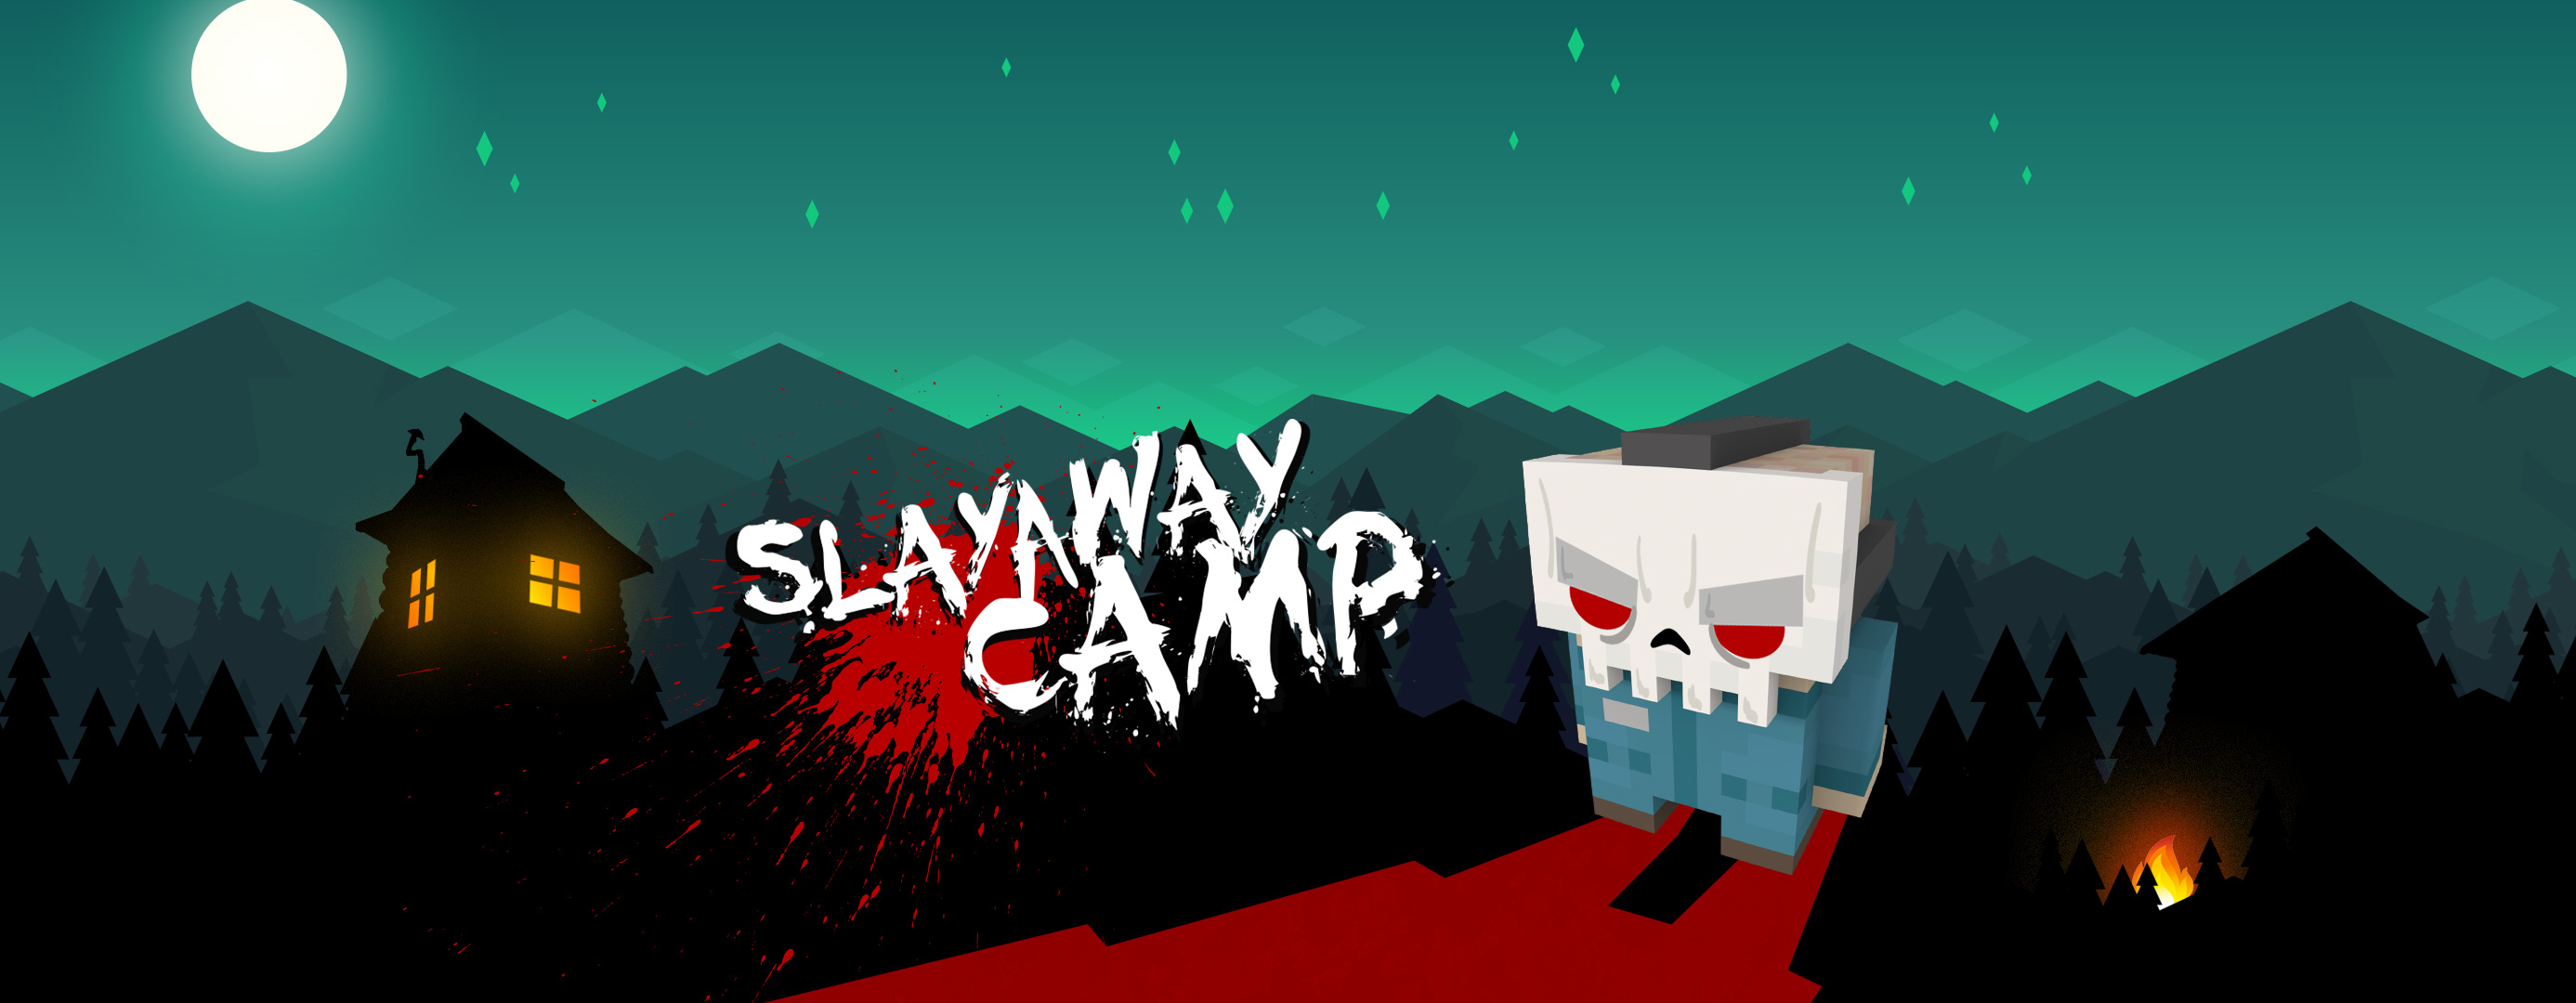 SlayawayCamp-Masthead